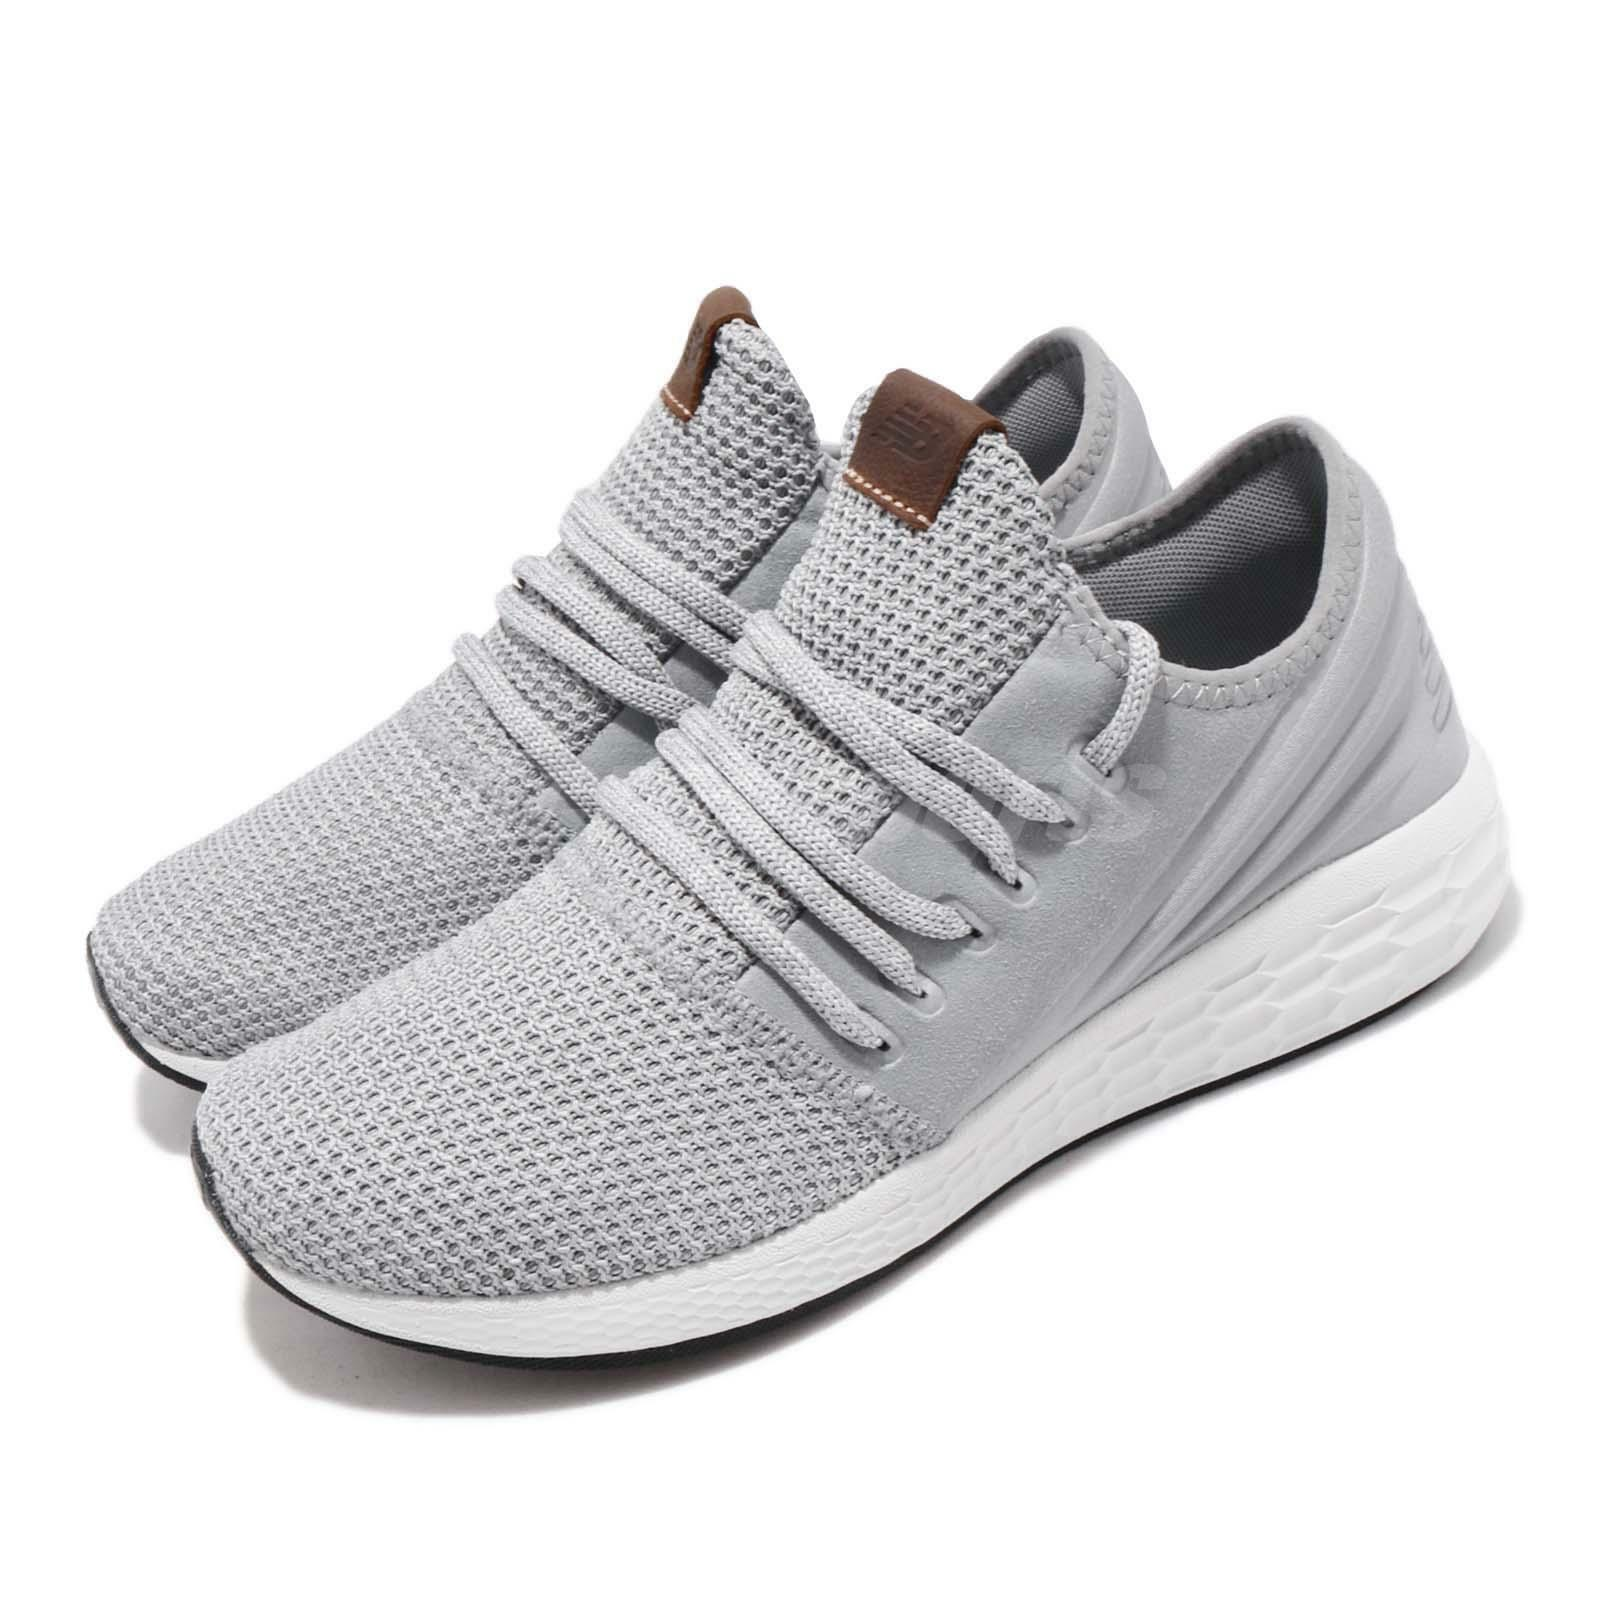 New Balance MCRZDLG2 D Grey White Men Running Casual shoes Sneakers MCRZDLG2D